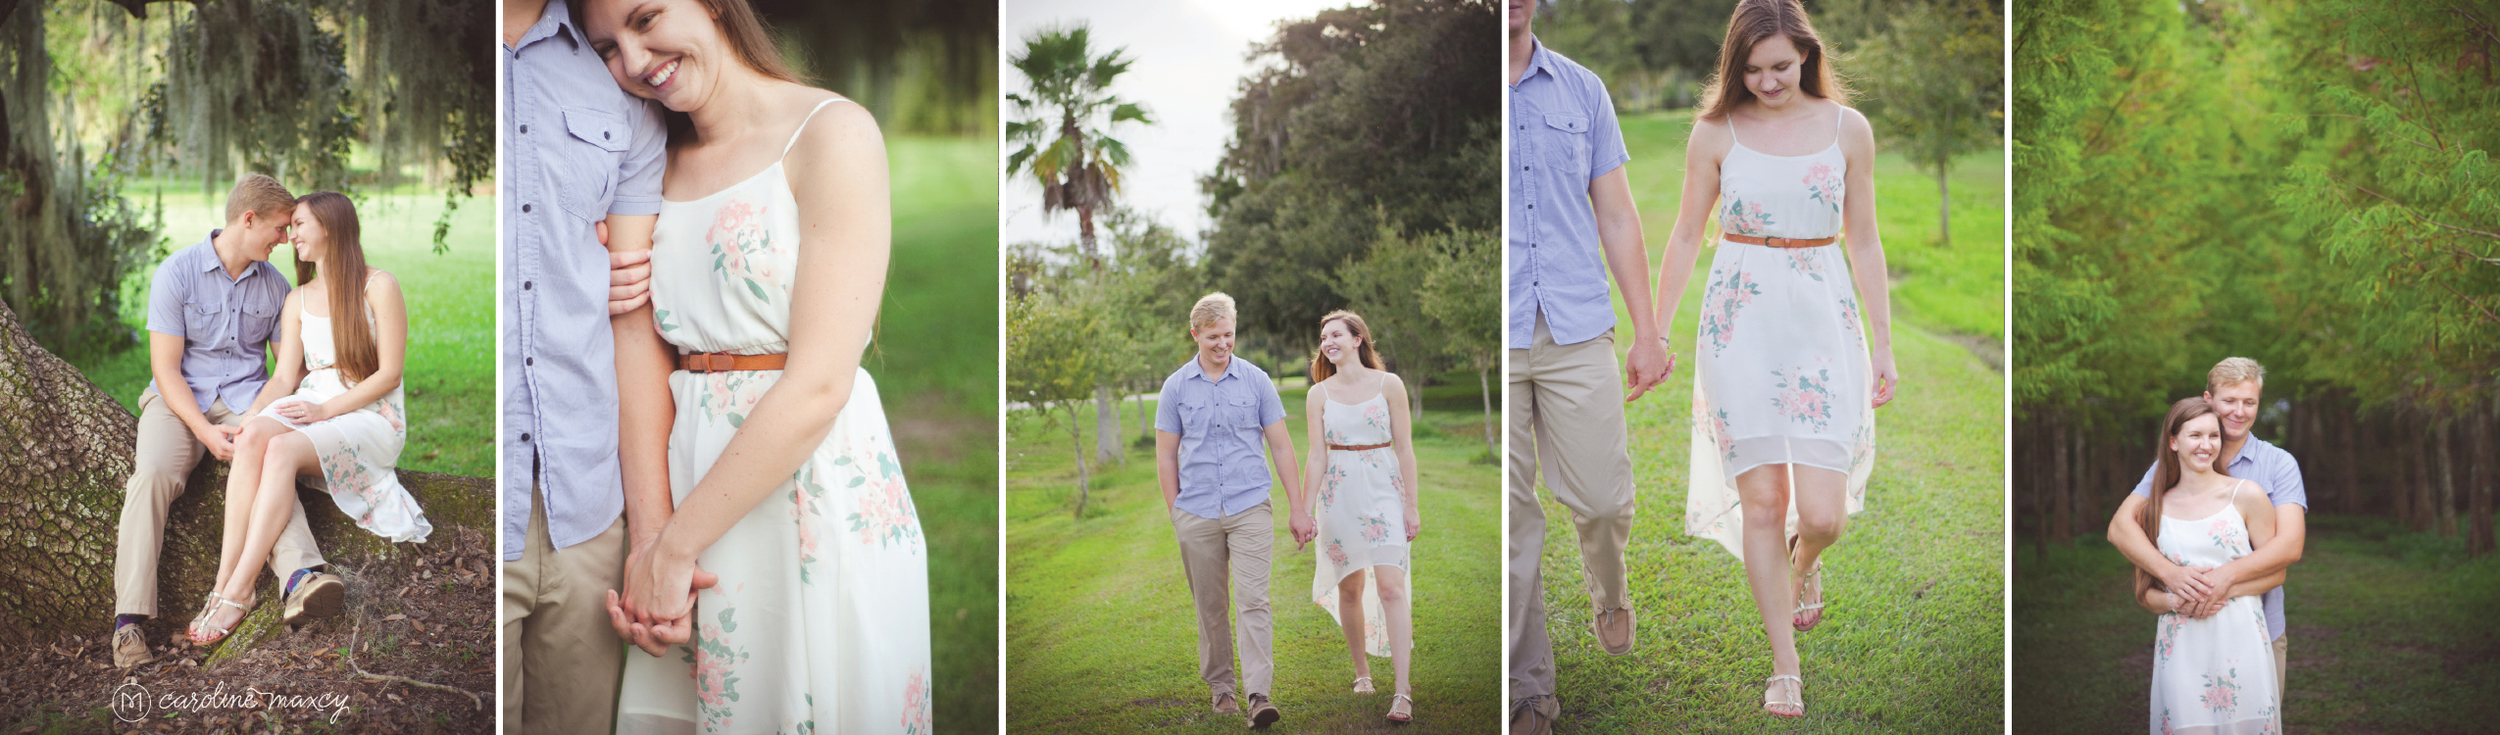 Central Florida engagement photography by Caroline Maxcy Photography.